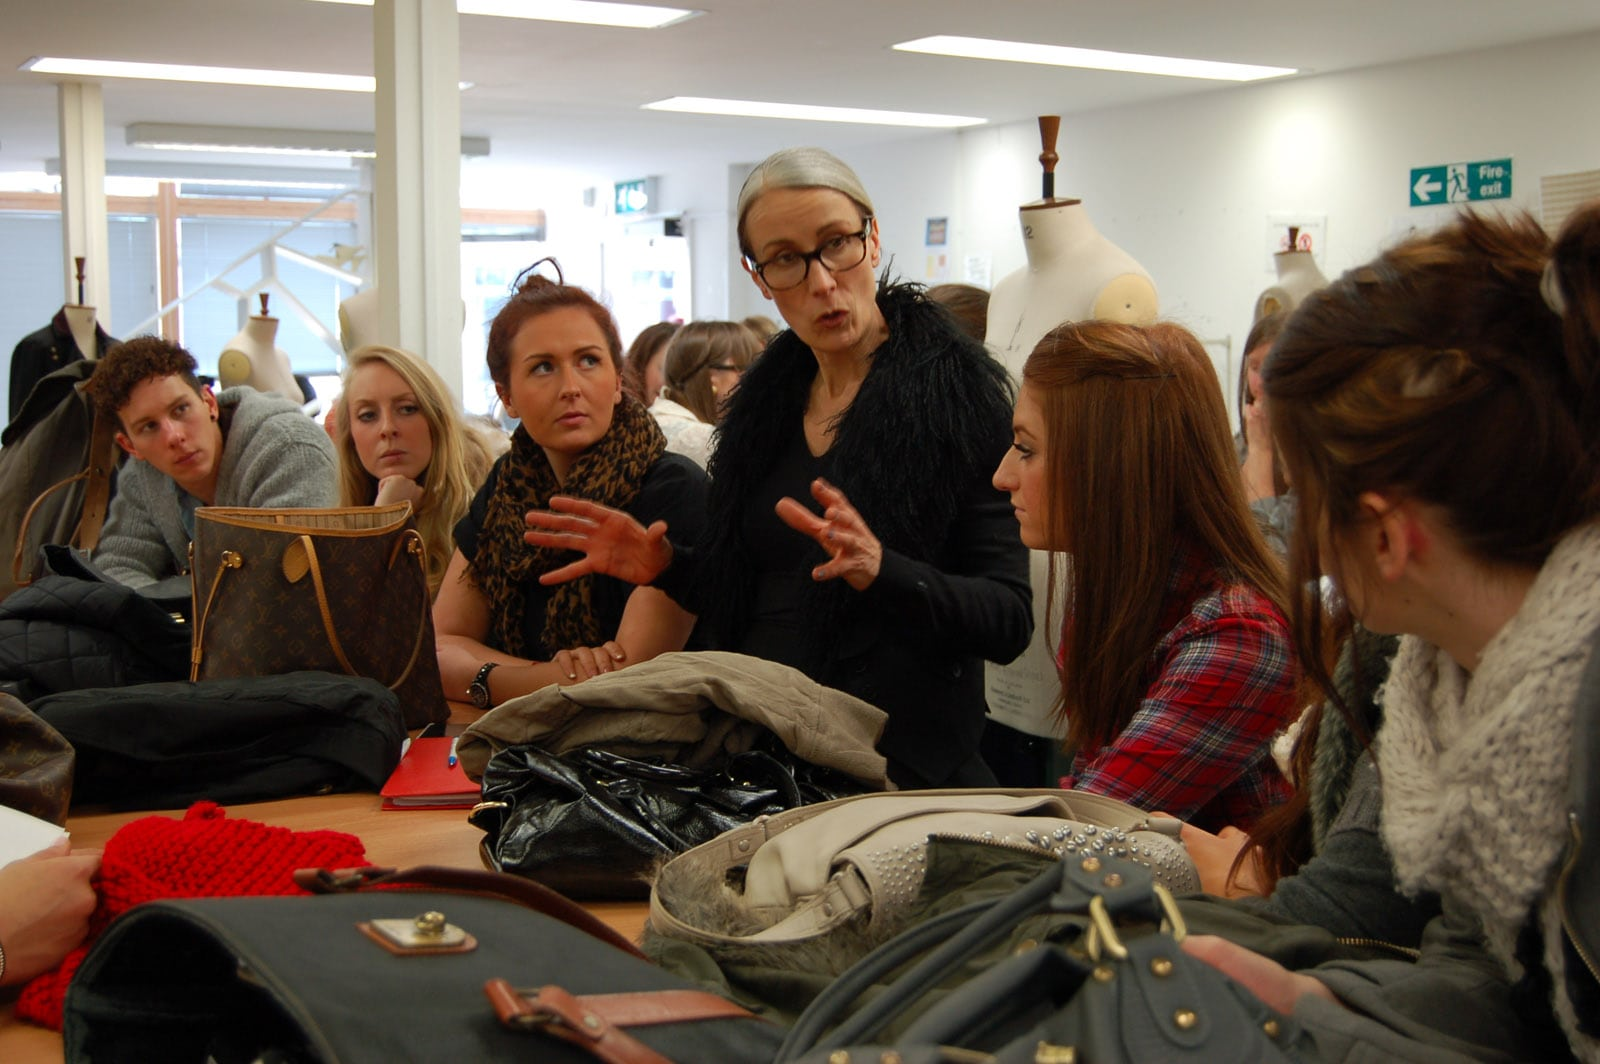 Caroyn Franklin Encourages Fashion Students to Design for Diversity